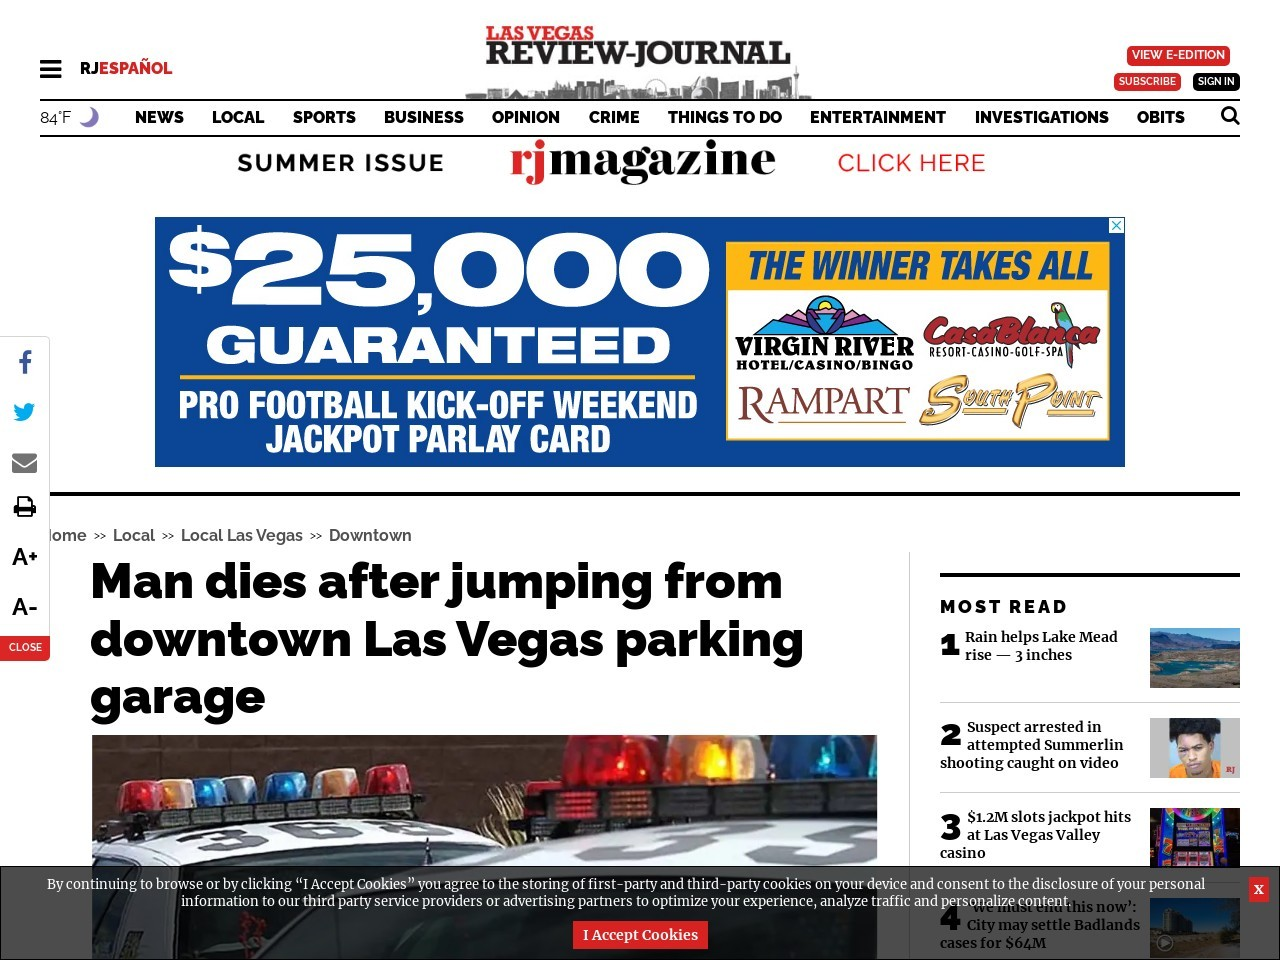 Man dies after jumping from downtown Las Vegas parking garage